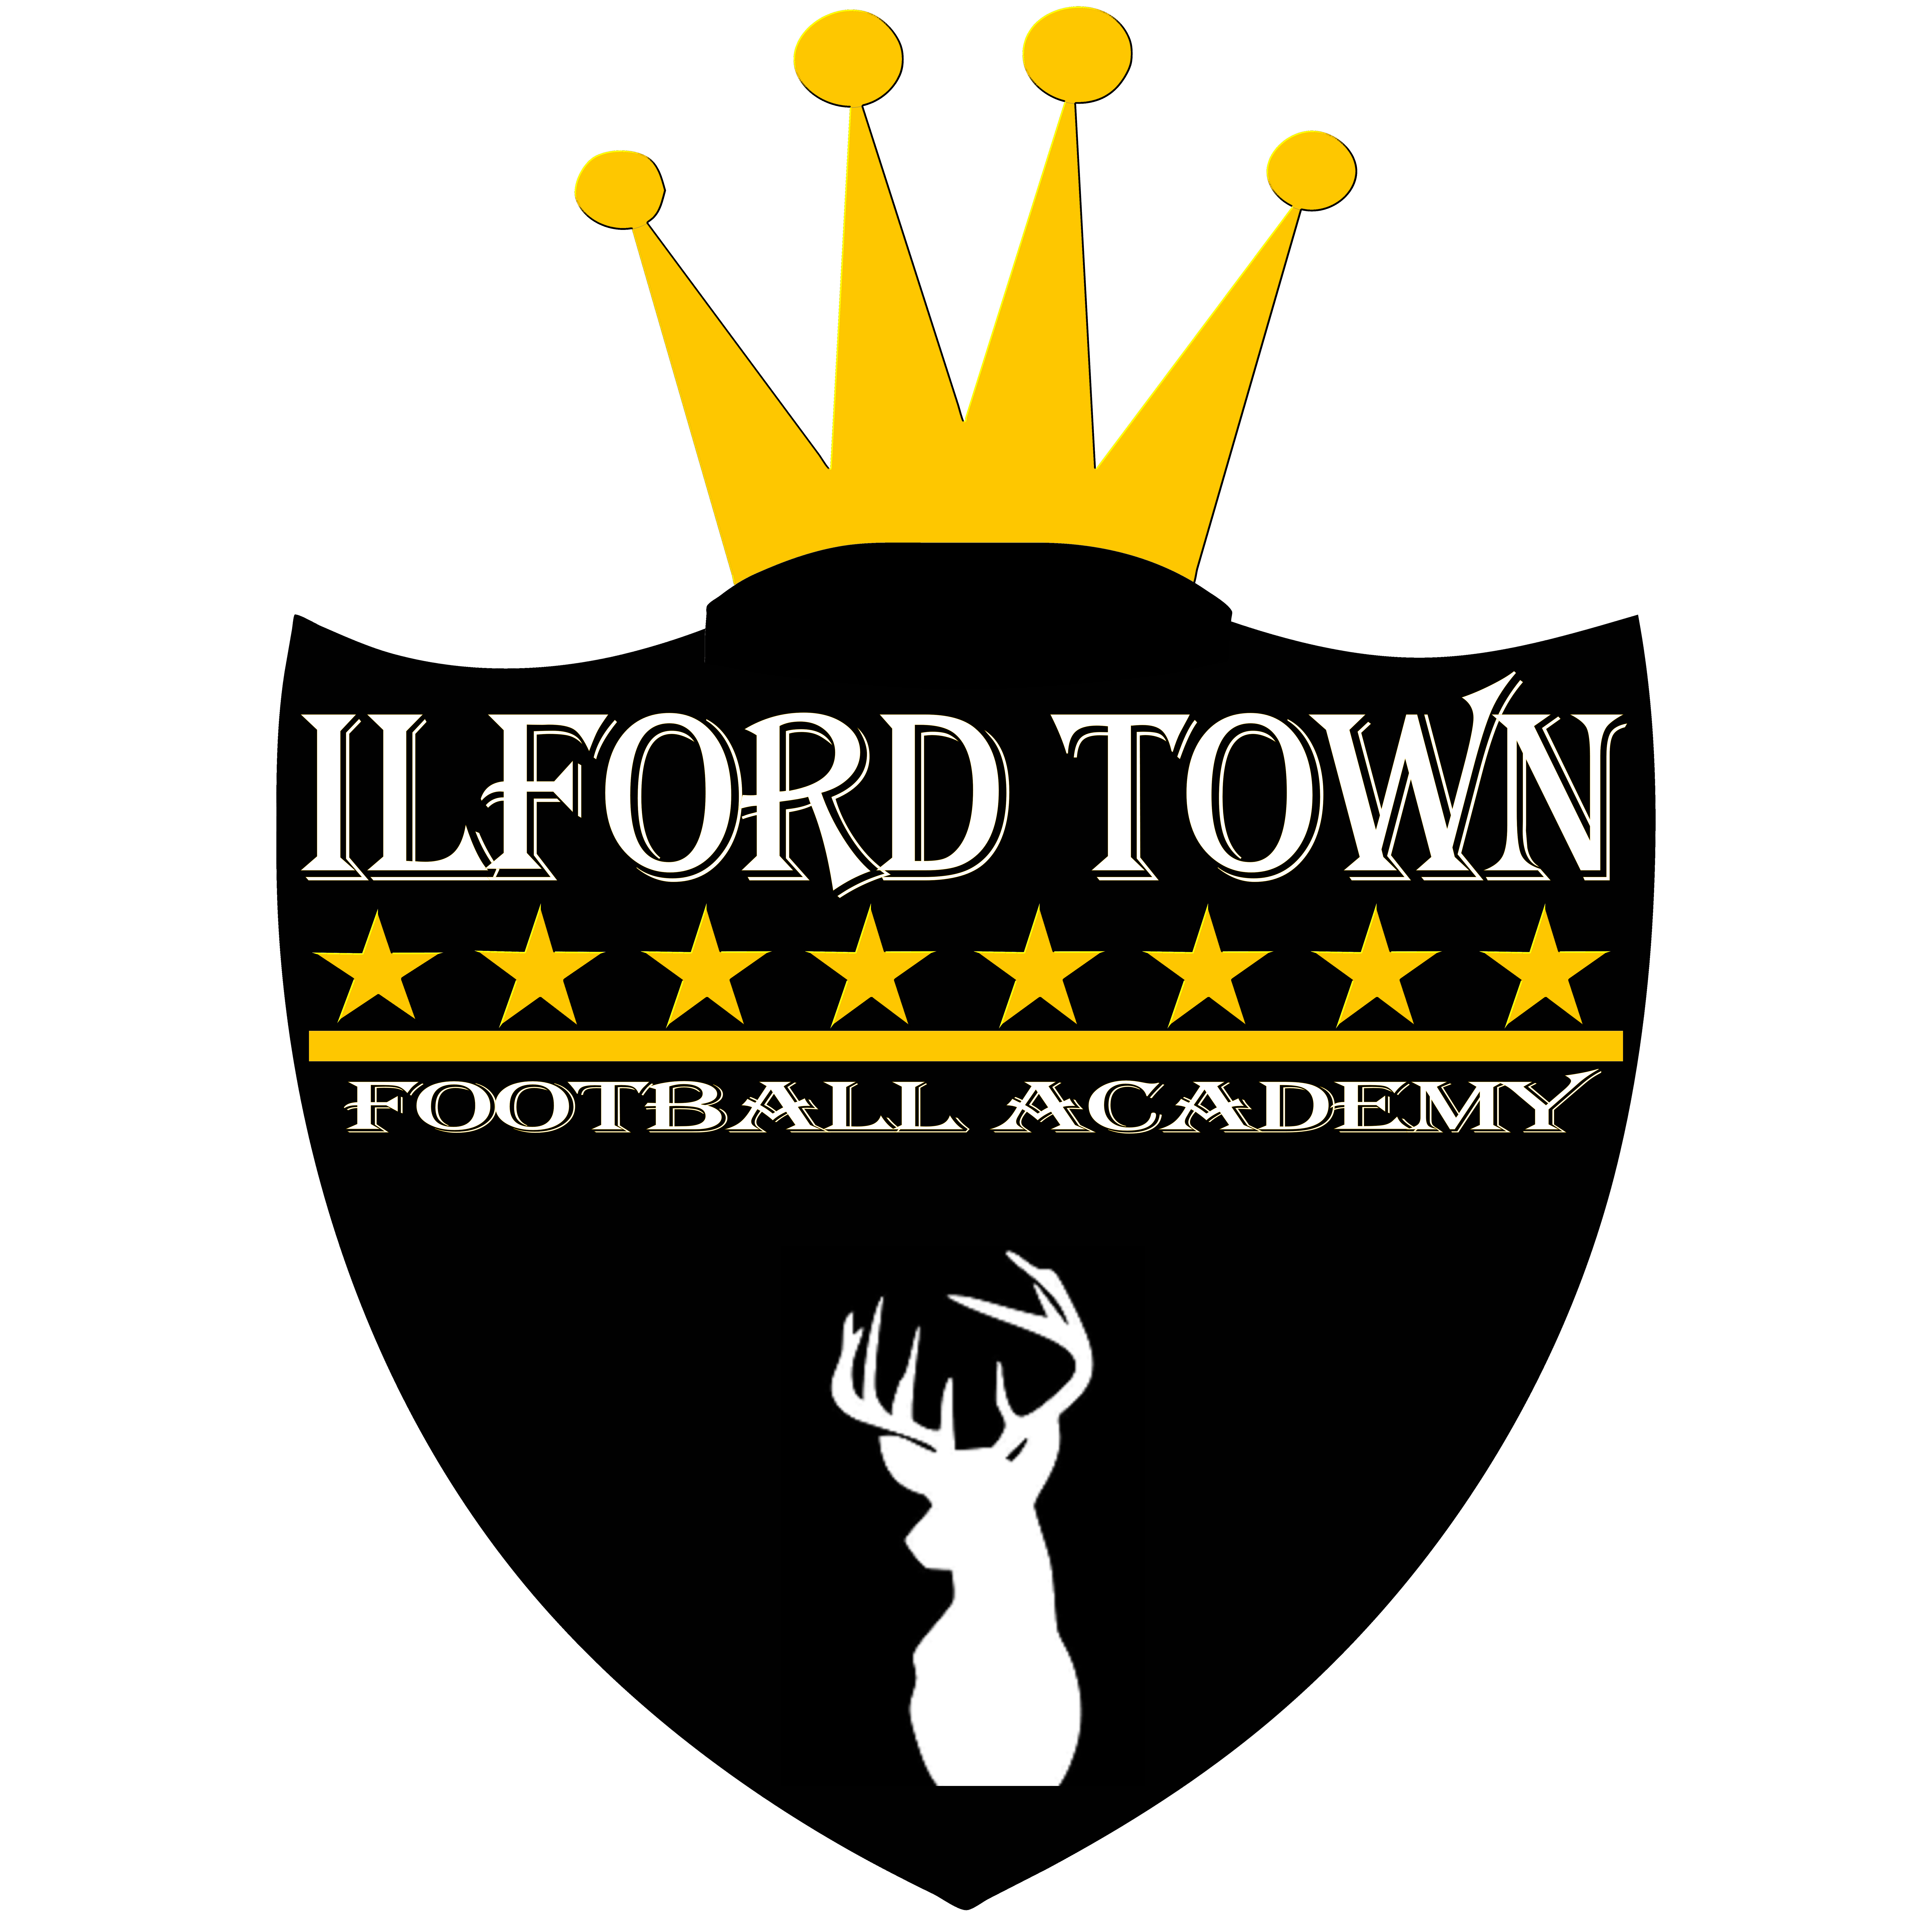 Ilford Town Football Academy